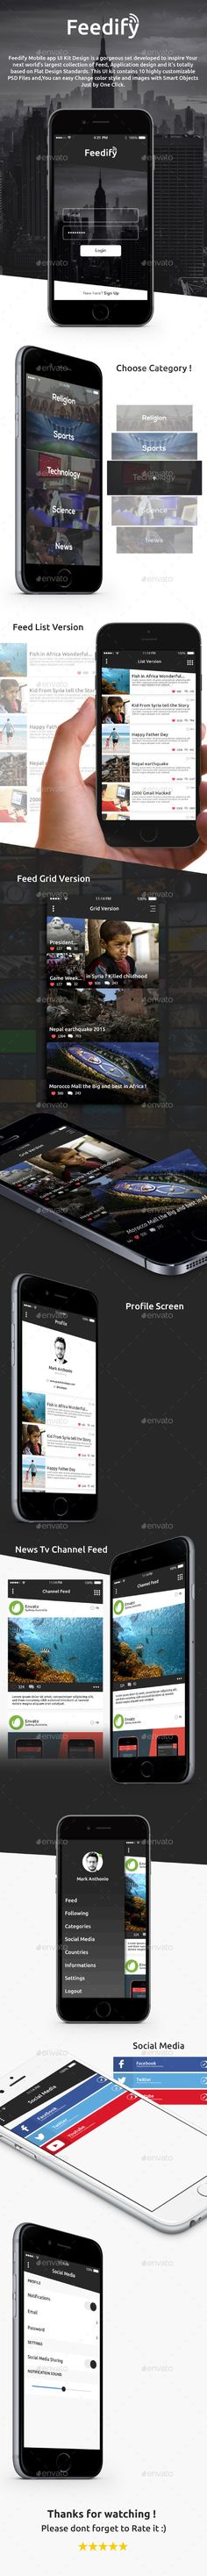 Feedify News Feed Mobile App UI Kit Design